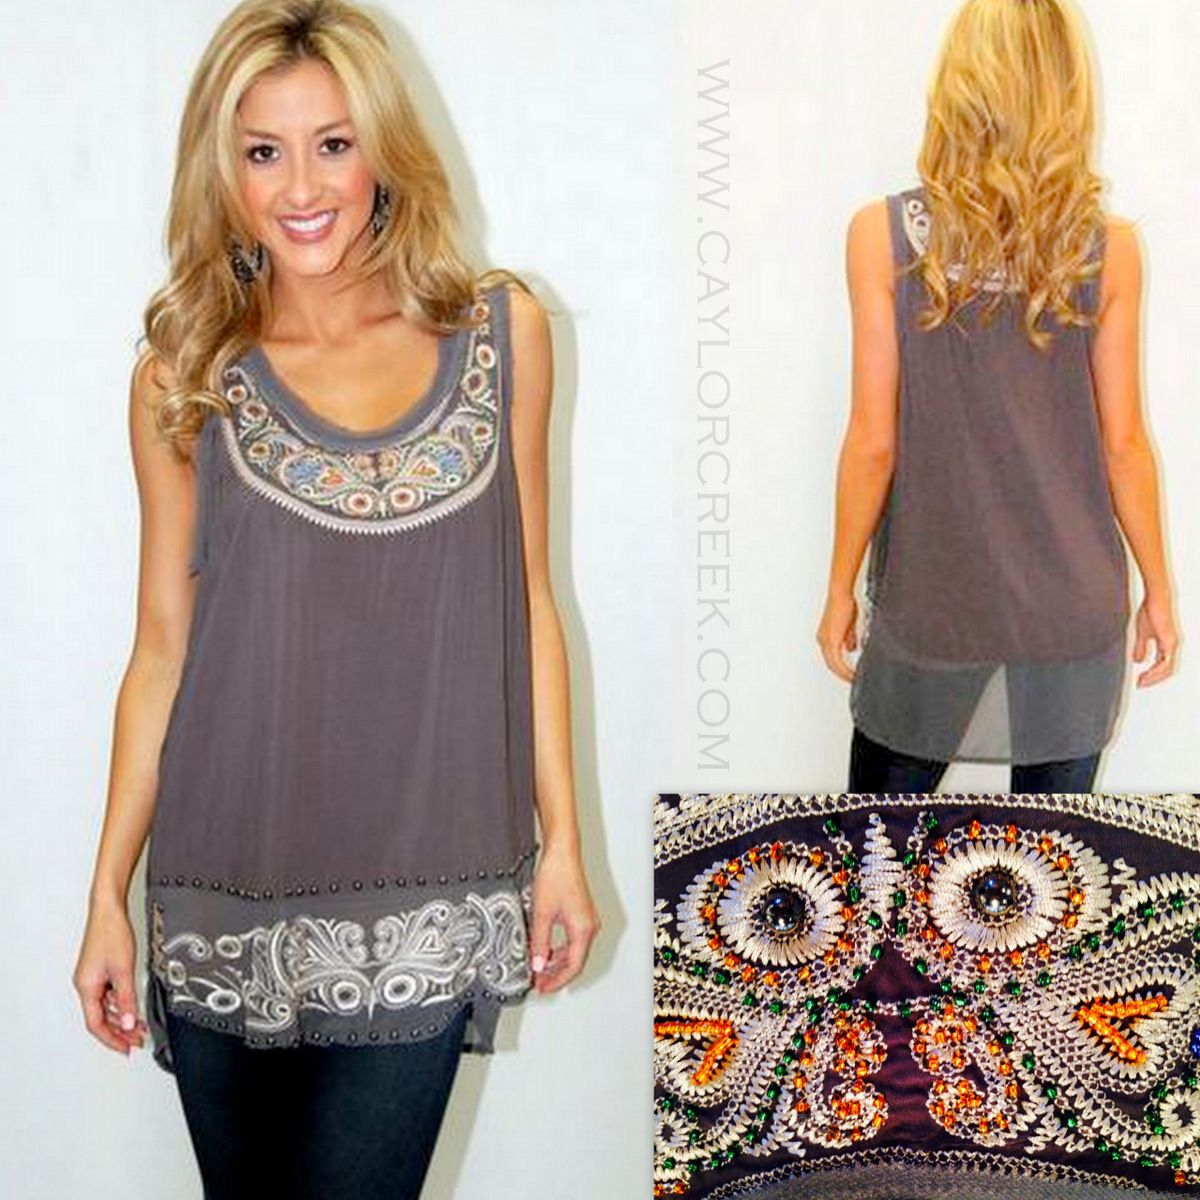 Going Platinum Tank   Caylor Creek Boutique is trendy women's fashion boutique located in Granbury Tx on the square. Great place to shop in Texas. 817-579-5444, Visit us on Facebook or Instagram also http://www.caylorcreek.com